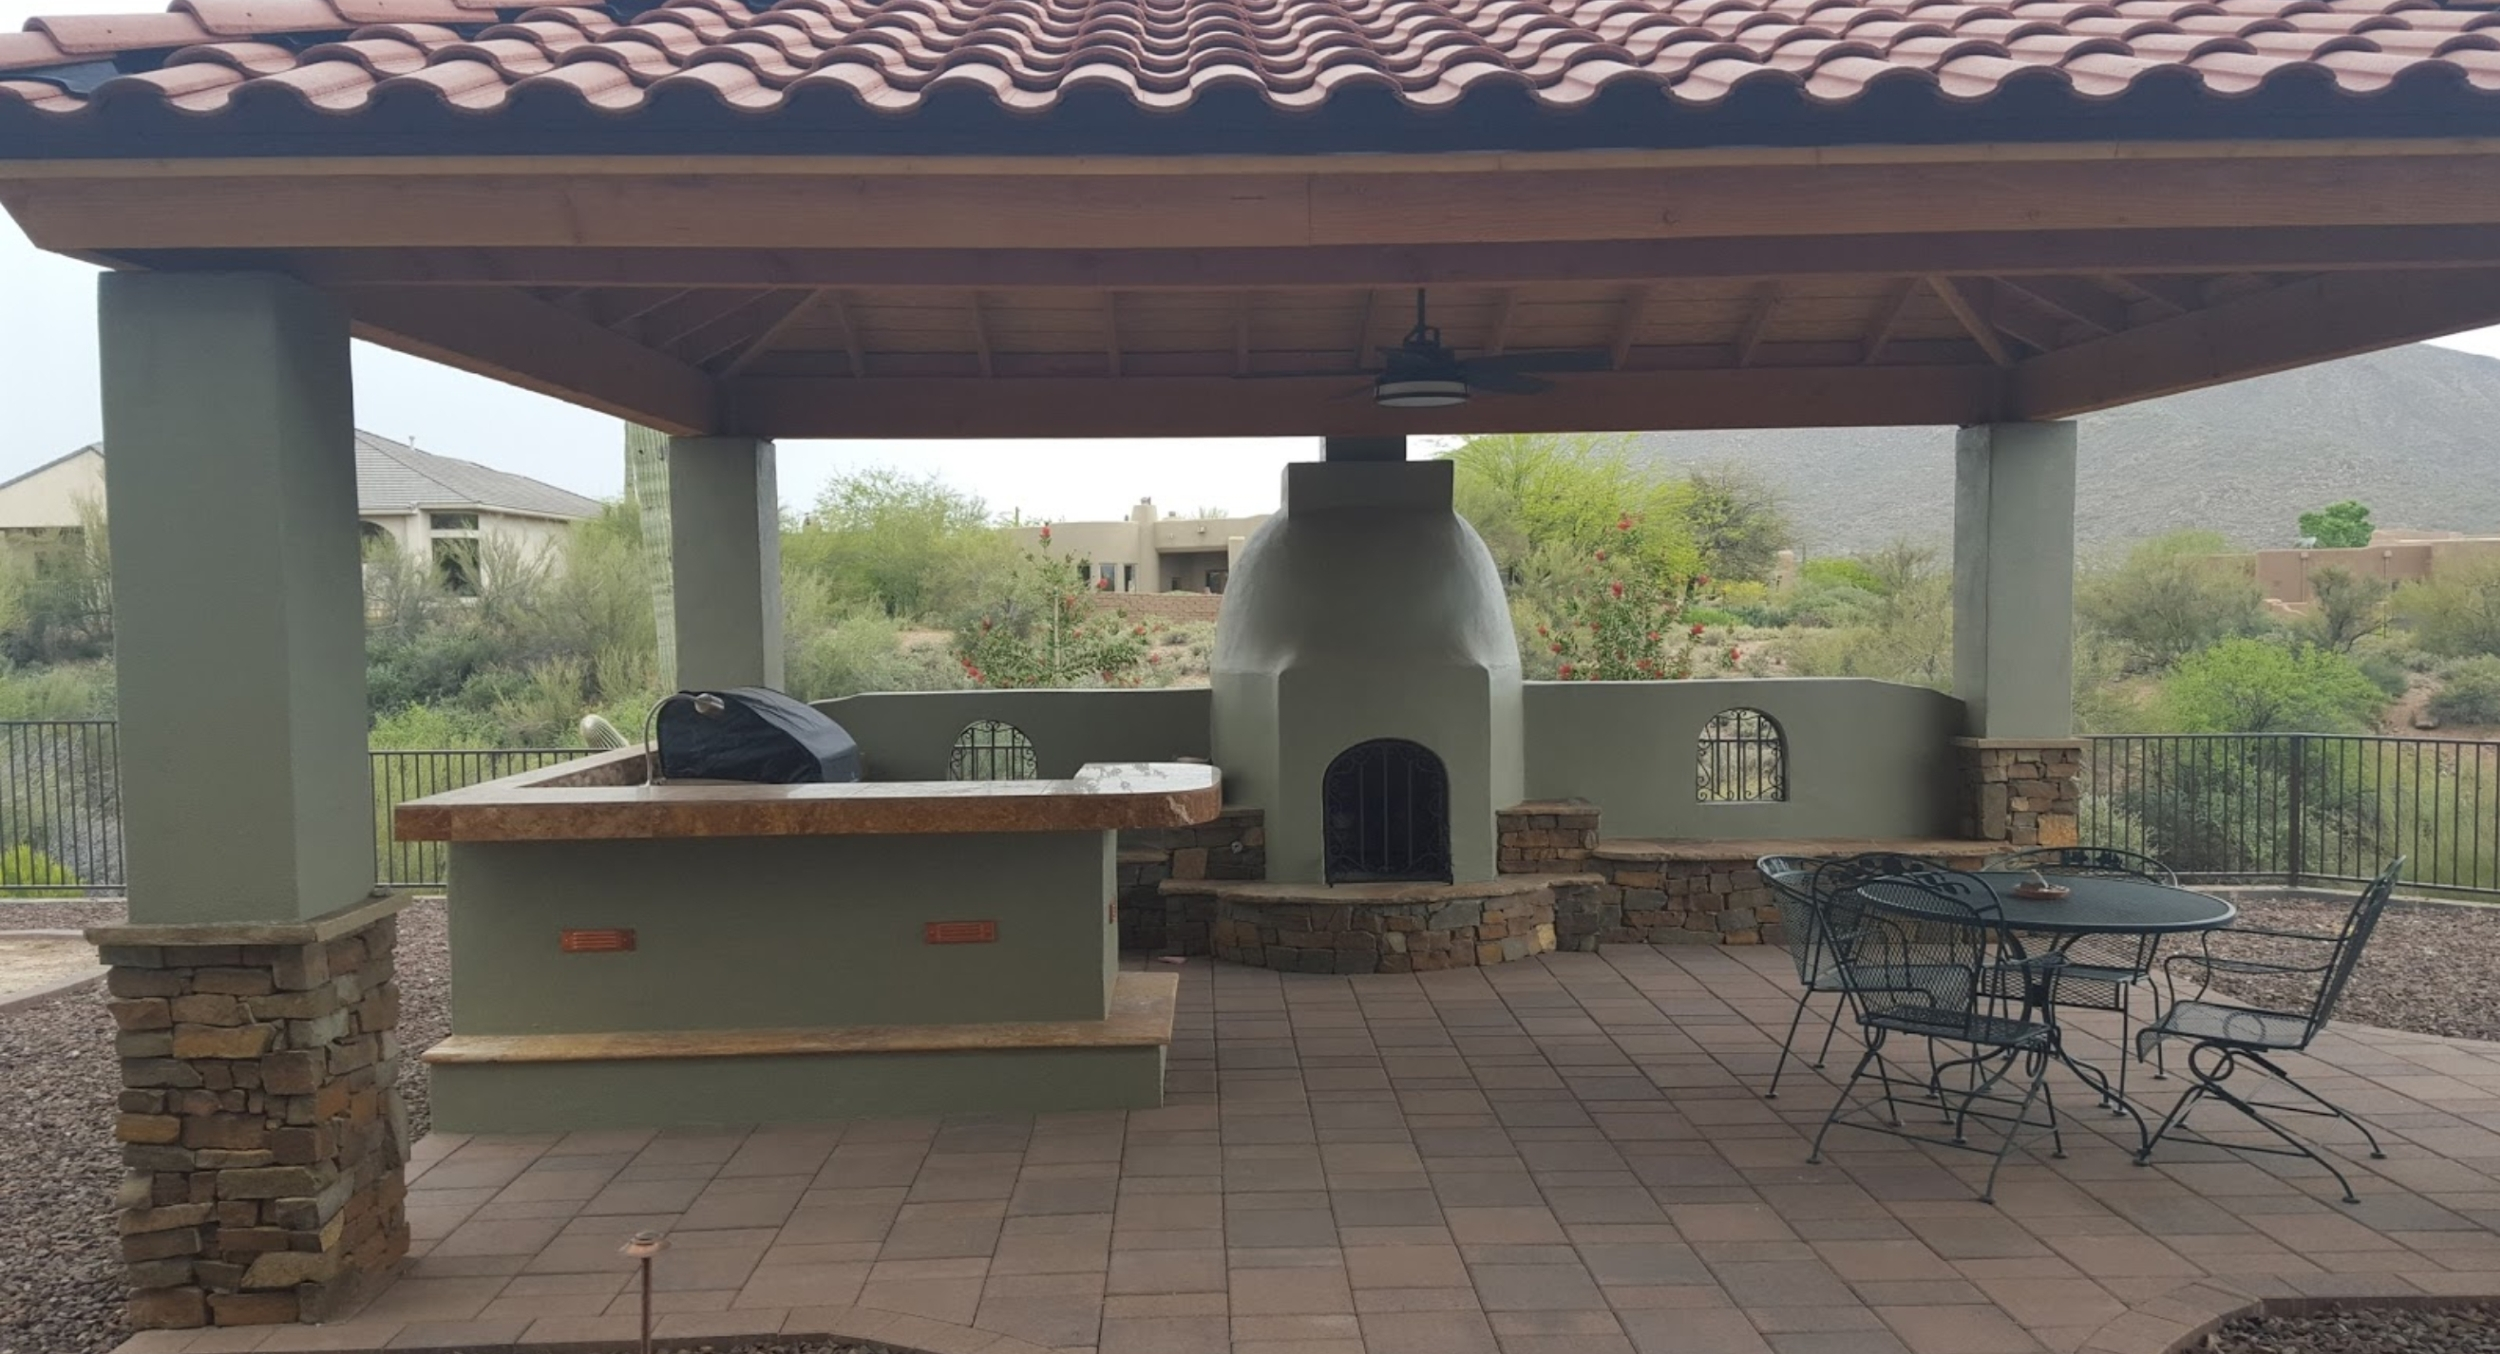 Soft silver green stucco shade structure with a red tile roof shelters the chef and diners in this outdoor kitchen and dining space.